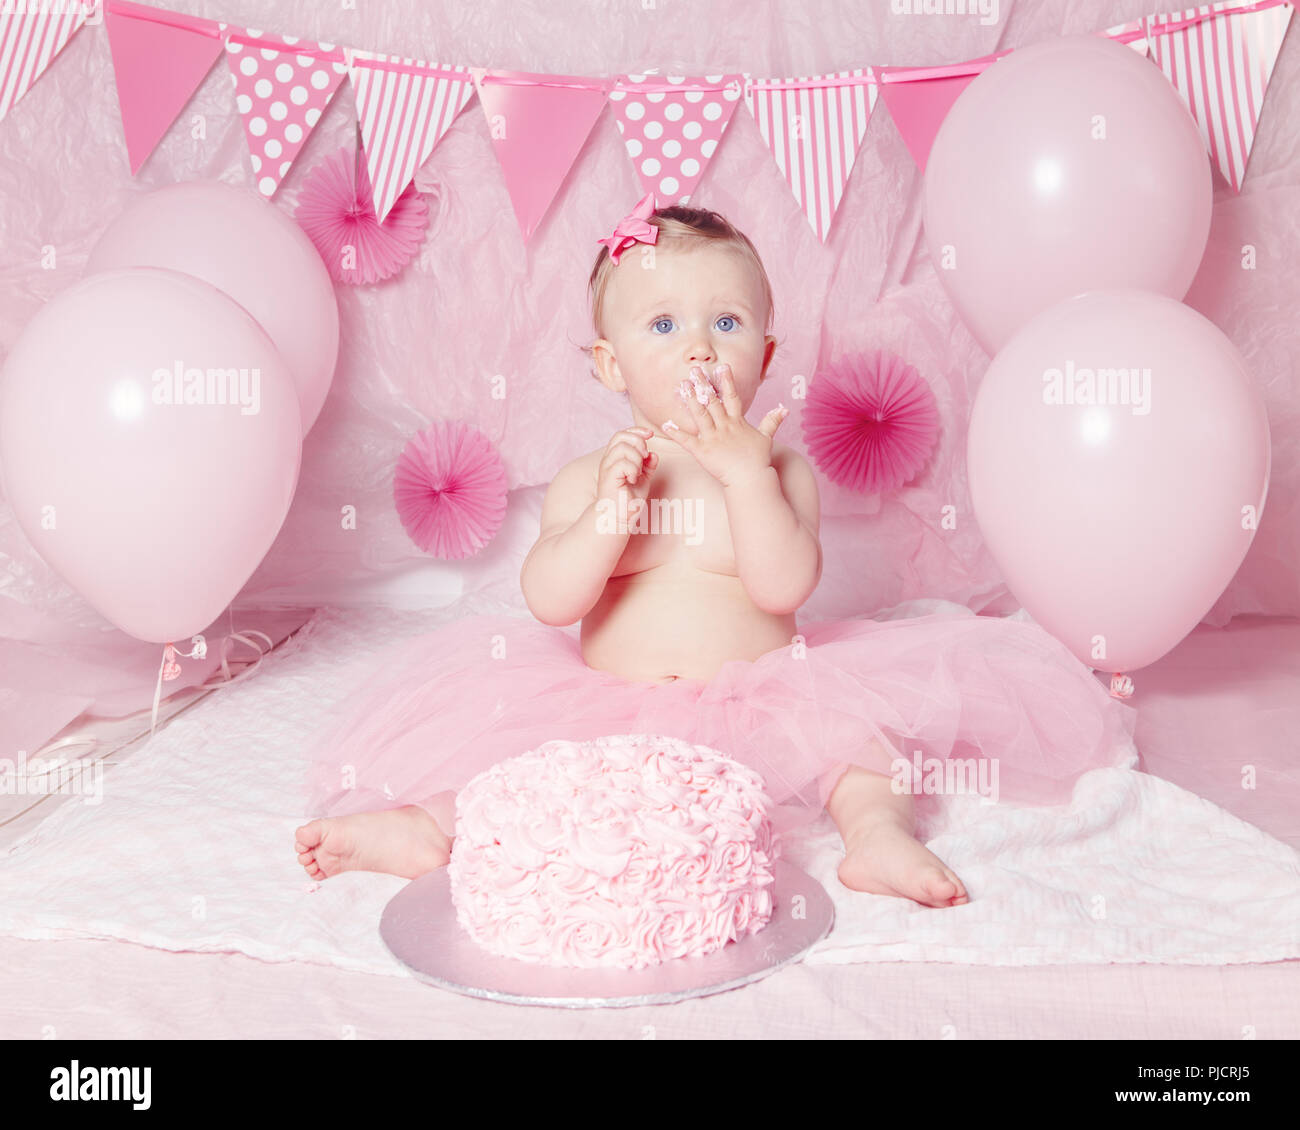 Portrait Of Cute Adorable Caucasian Baby Girl With Blue Eyes In Pink Tutu Skirt Celebrating Her